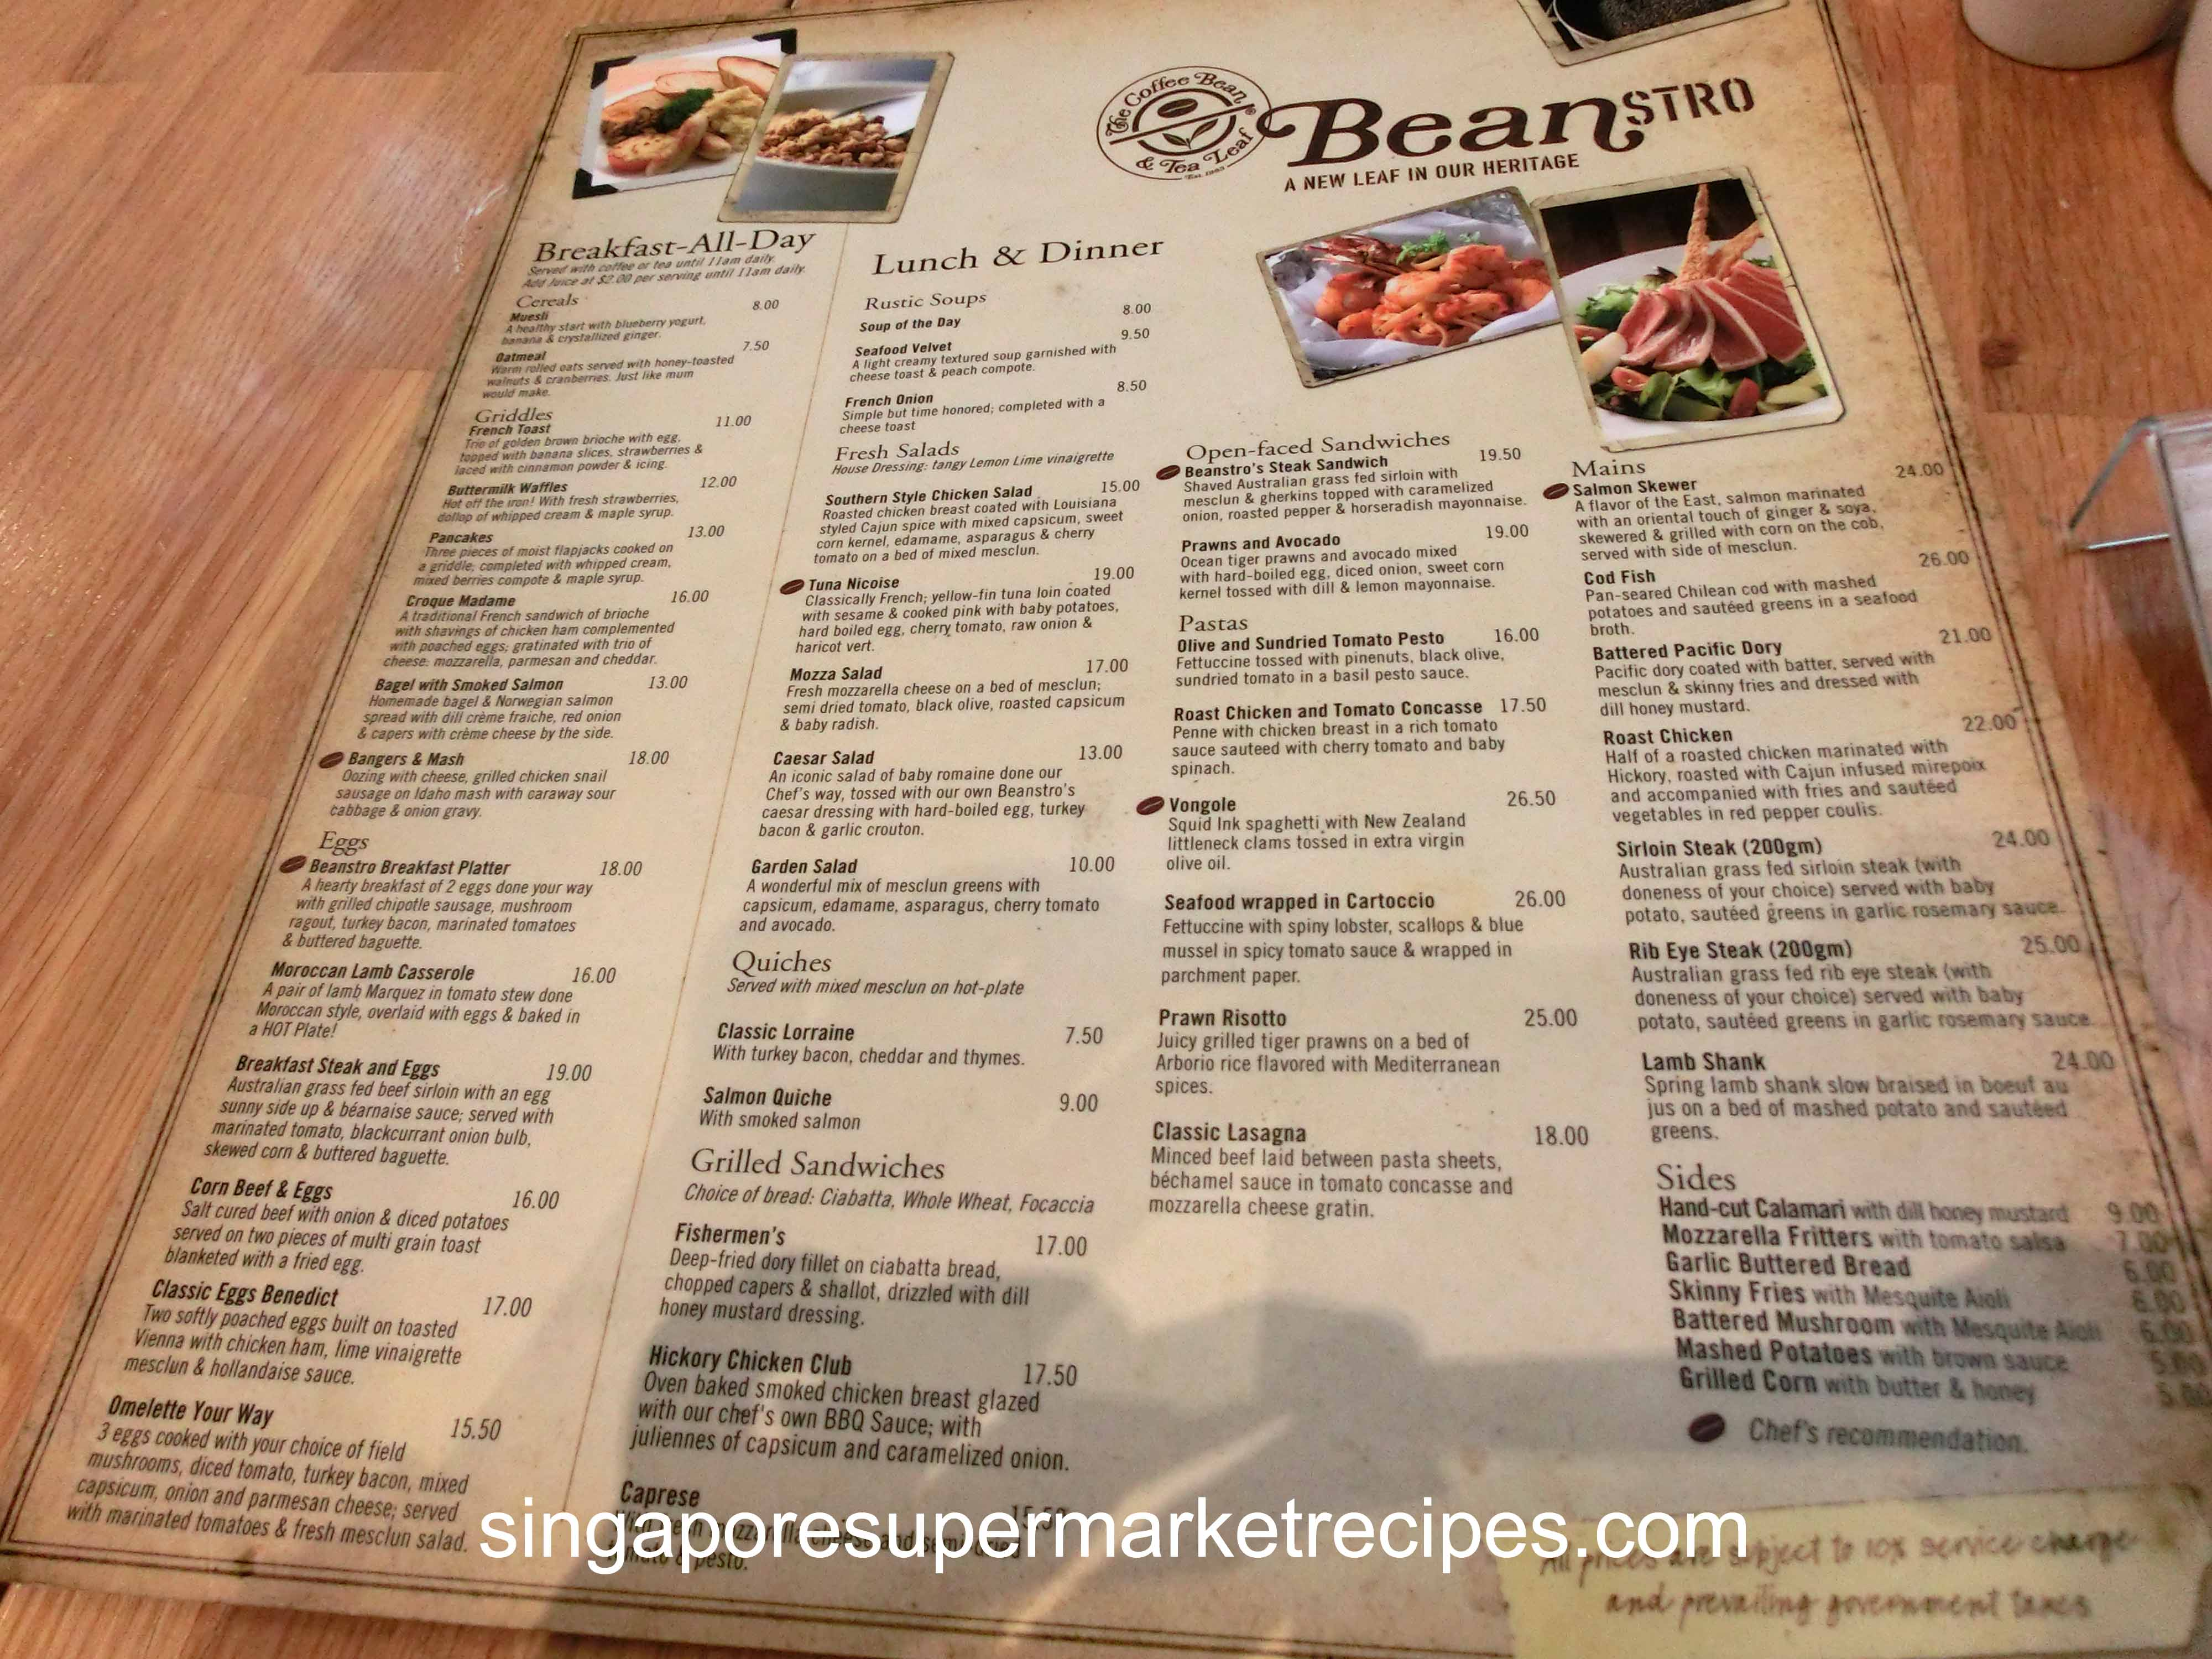 The Coffee Bean Tea Leaf Bistro At Mbs People Watch Shop Watch Boat Watch Food Watch With Menu Singaporesupermarketrecipes Com